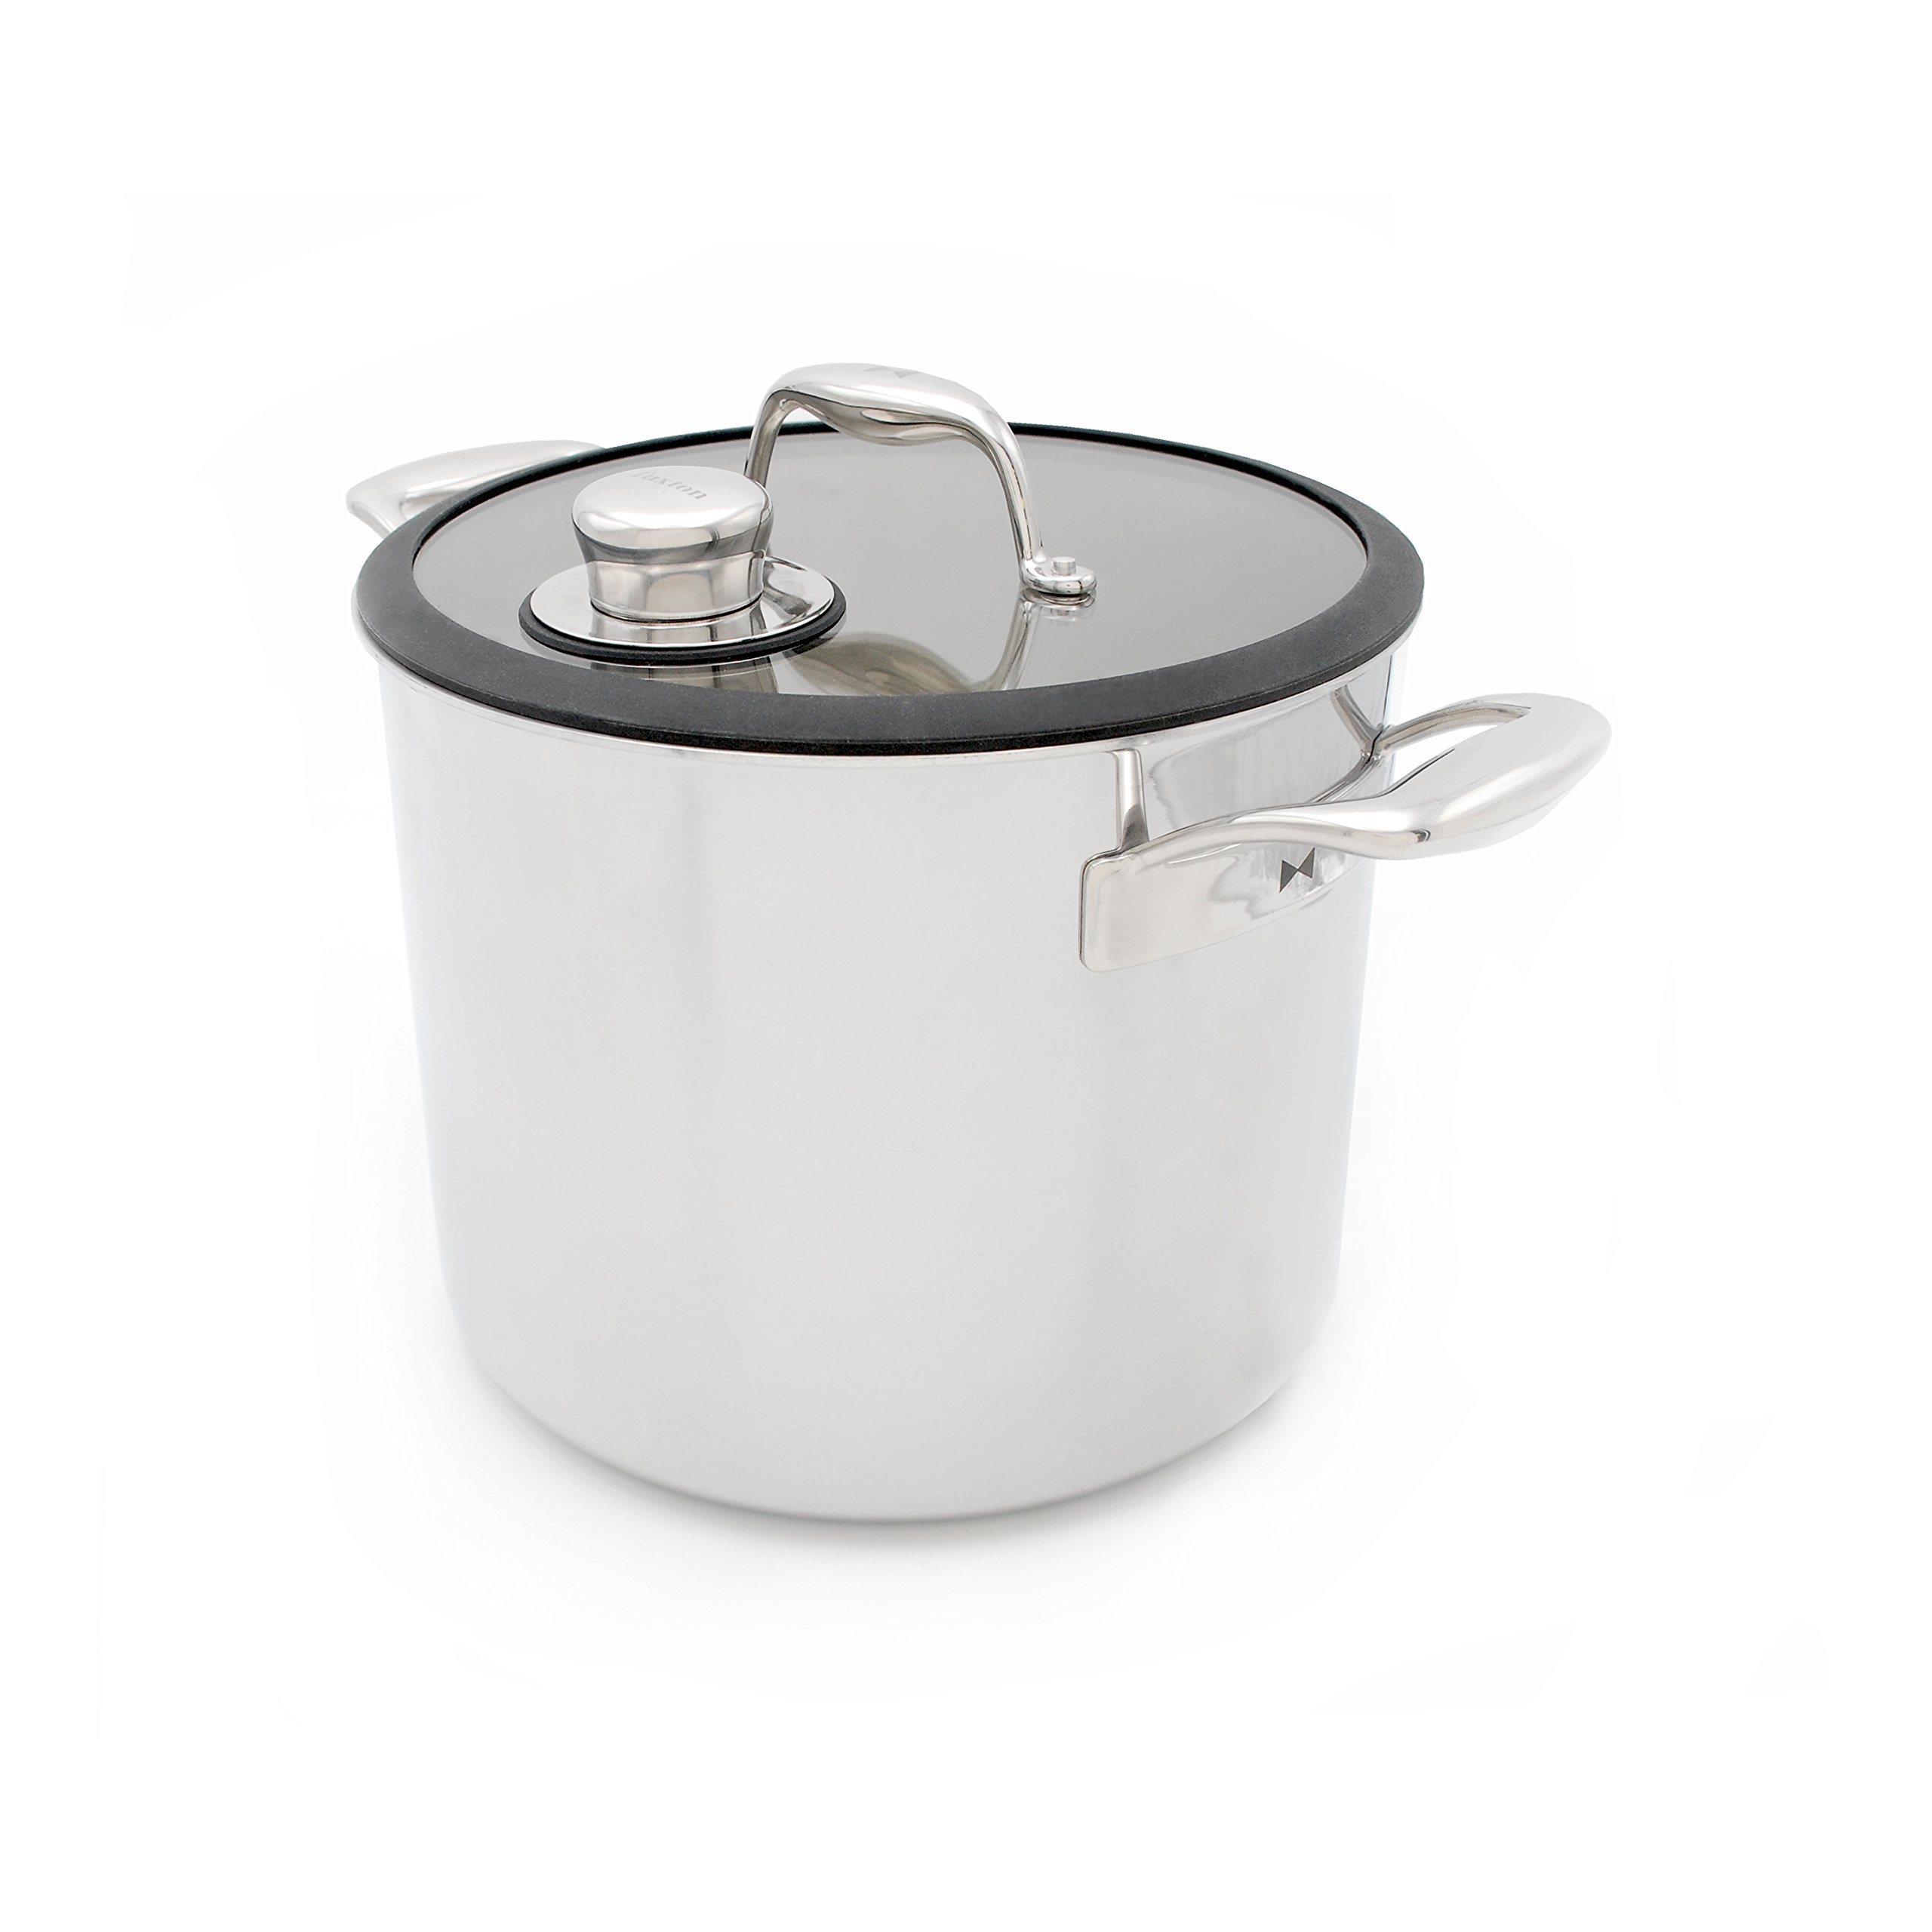 Tuxton Home THBCZ3-SS9-G Chef Series Sous Vide Pot Specialty Stockpot, 9.8 quart, Stainless steel by Tuxton Home (Image #4)